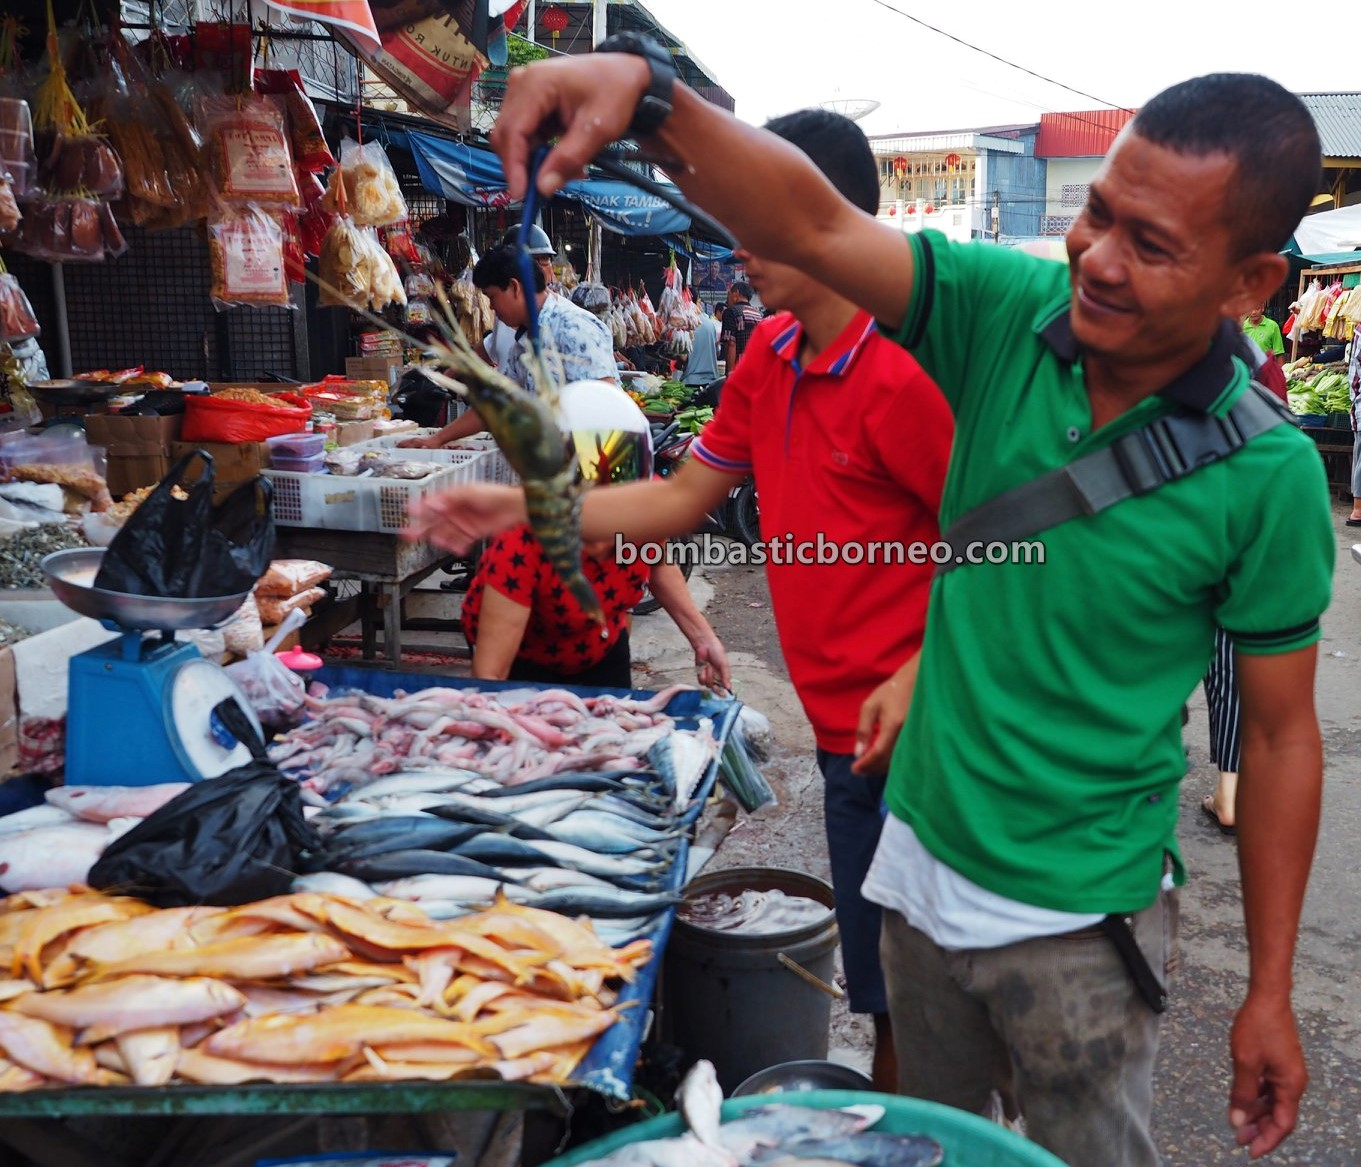 Pasar Turi, Local Market, authentic, traditional, backpackers, destination, Indonesia, Kota Amoi, tourist attraction, travel guide, Trans Border, Borneo, 婆罗洲旅游景点, 印尼西加里曼丹, 山口洋早市